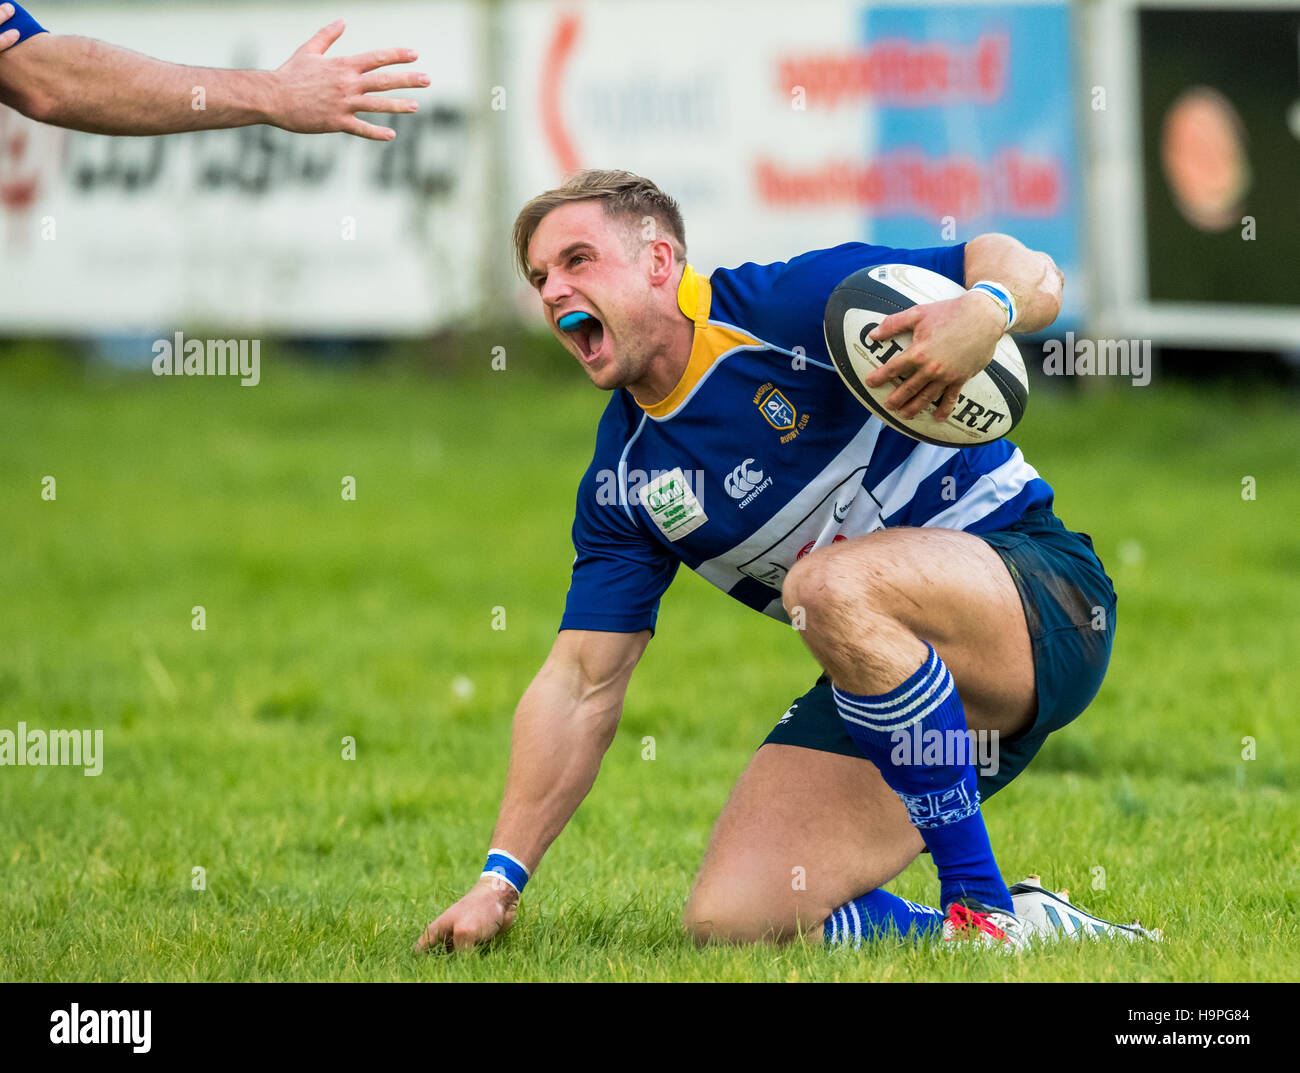 Rugby player ecstatic after scoring with a touch. - Stock Image